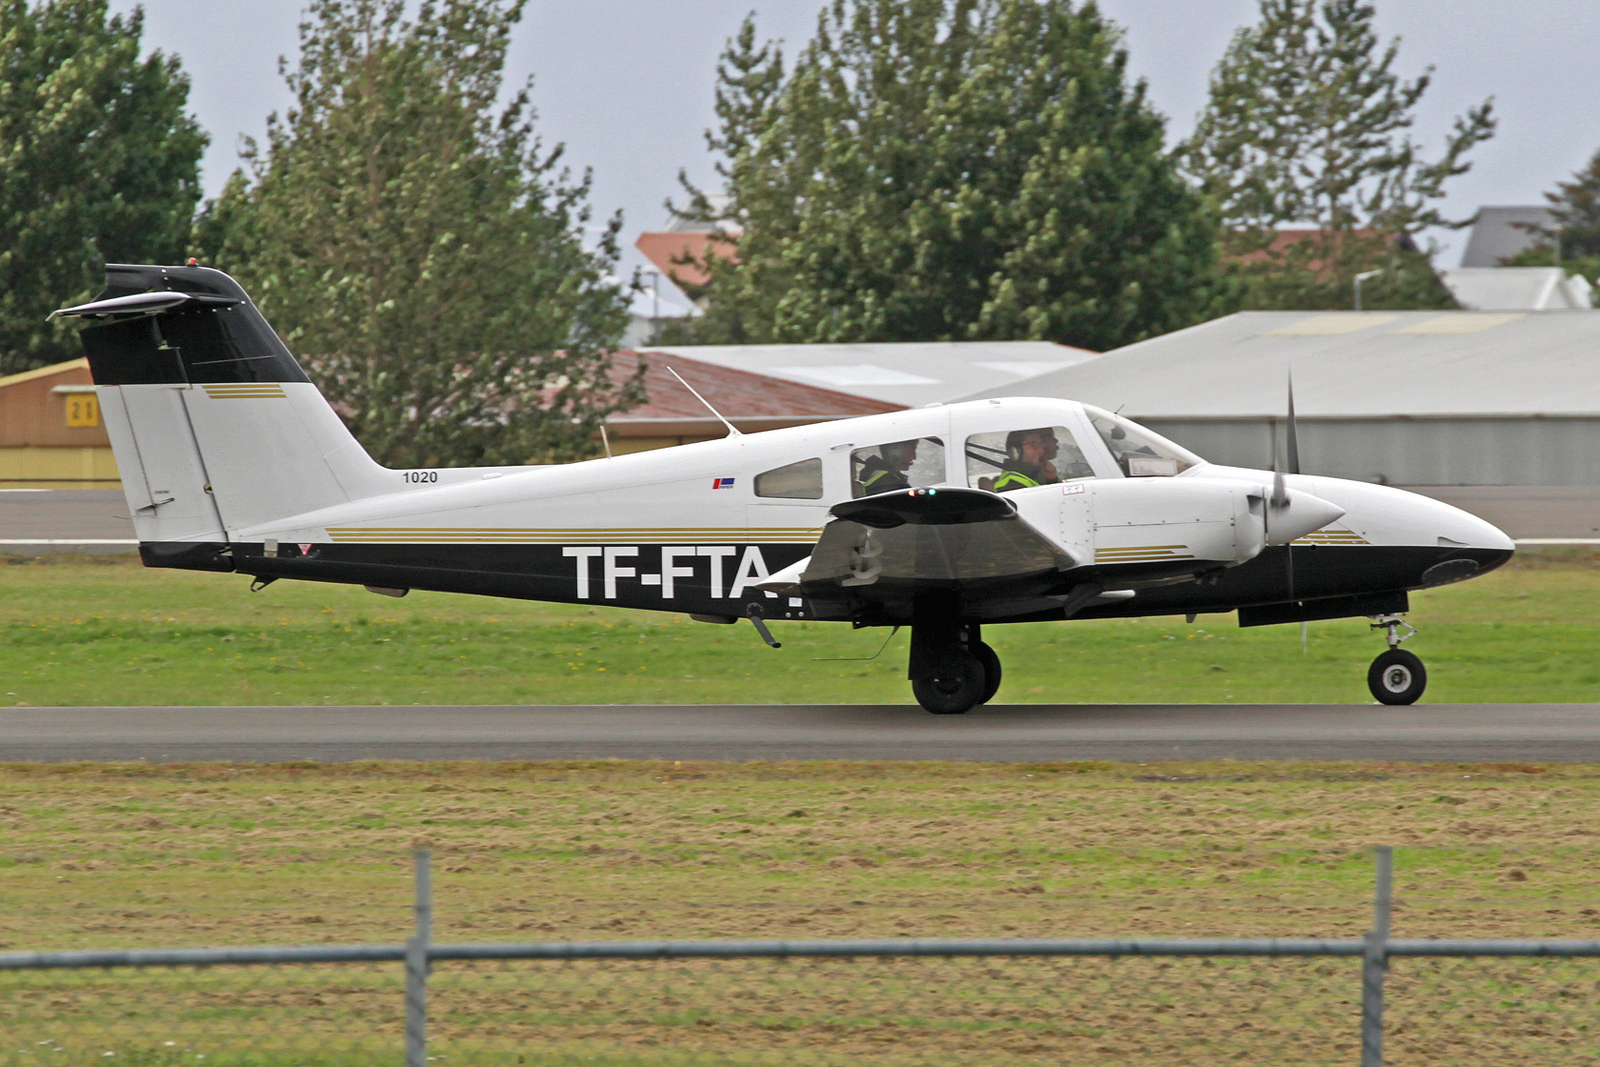 Keilir Aviation Academy Piper PA-44-180 TF-FTA, RKV, 10. August 2020